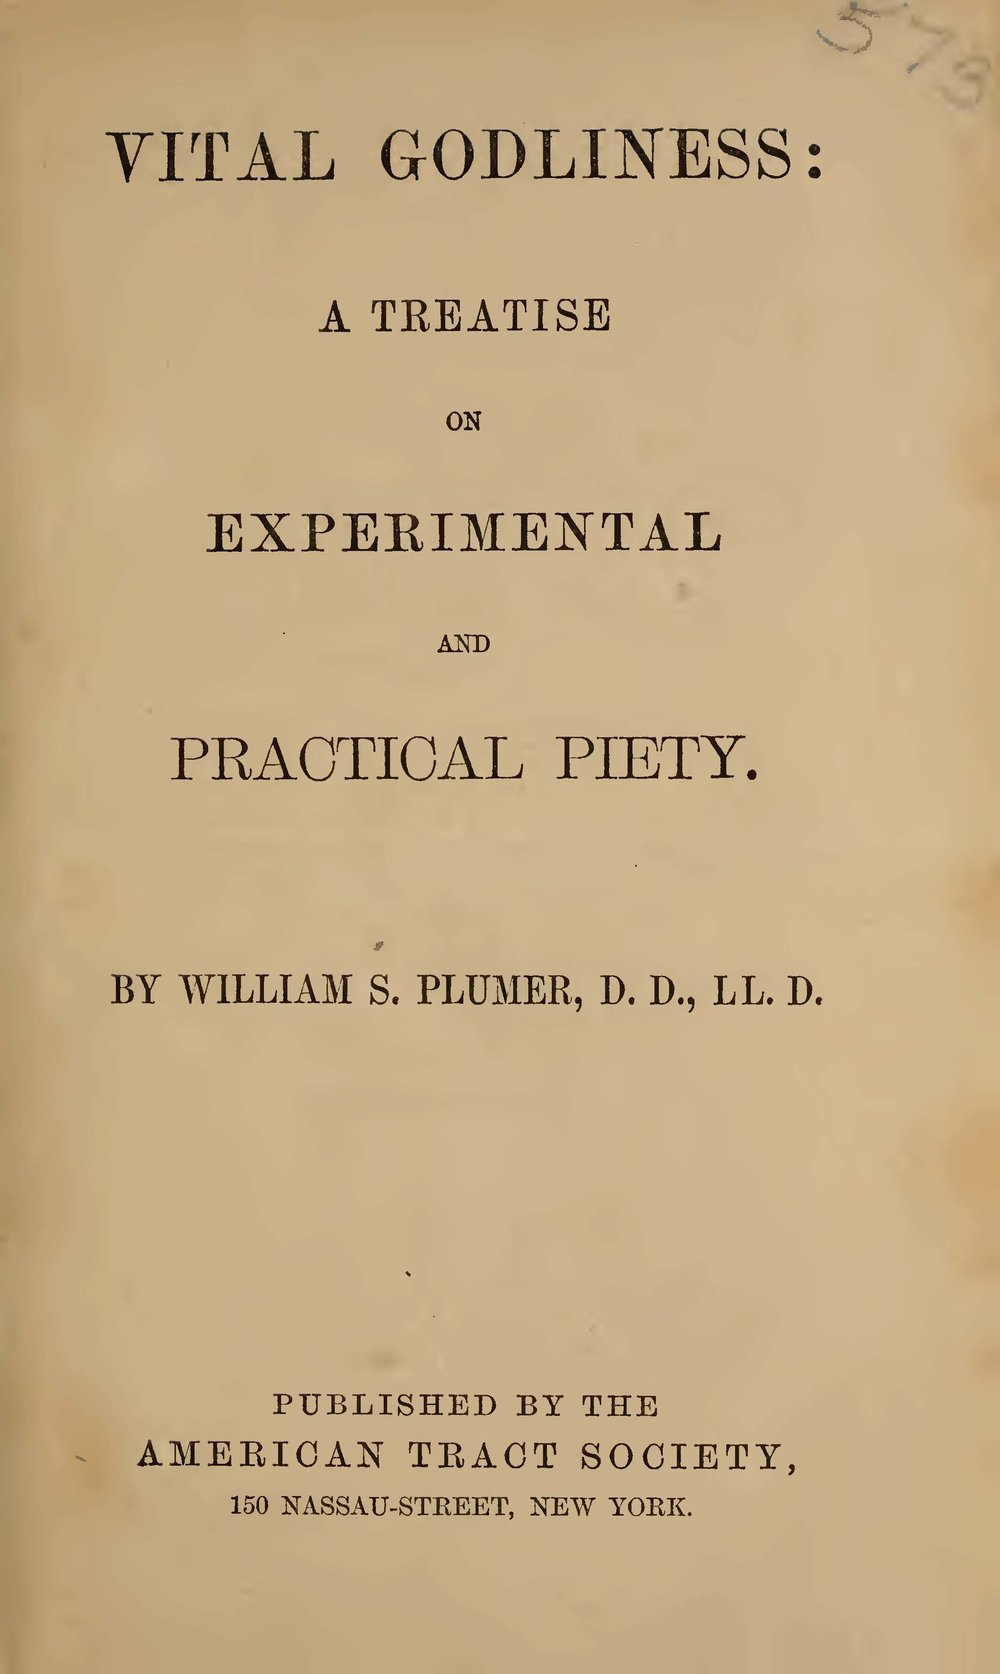 Plumer, William Swan, Vital Godliness A Treatise on Experimental and Practical Piety Title Page.jpg